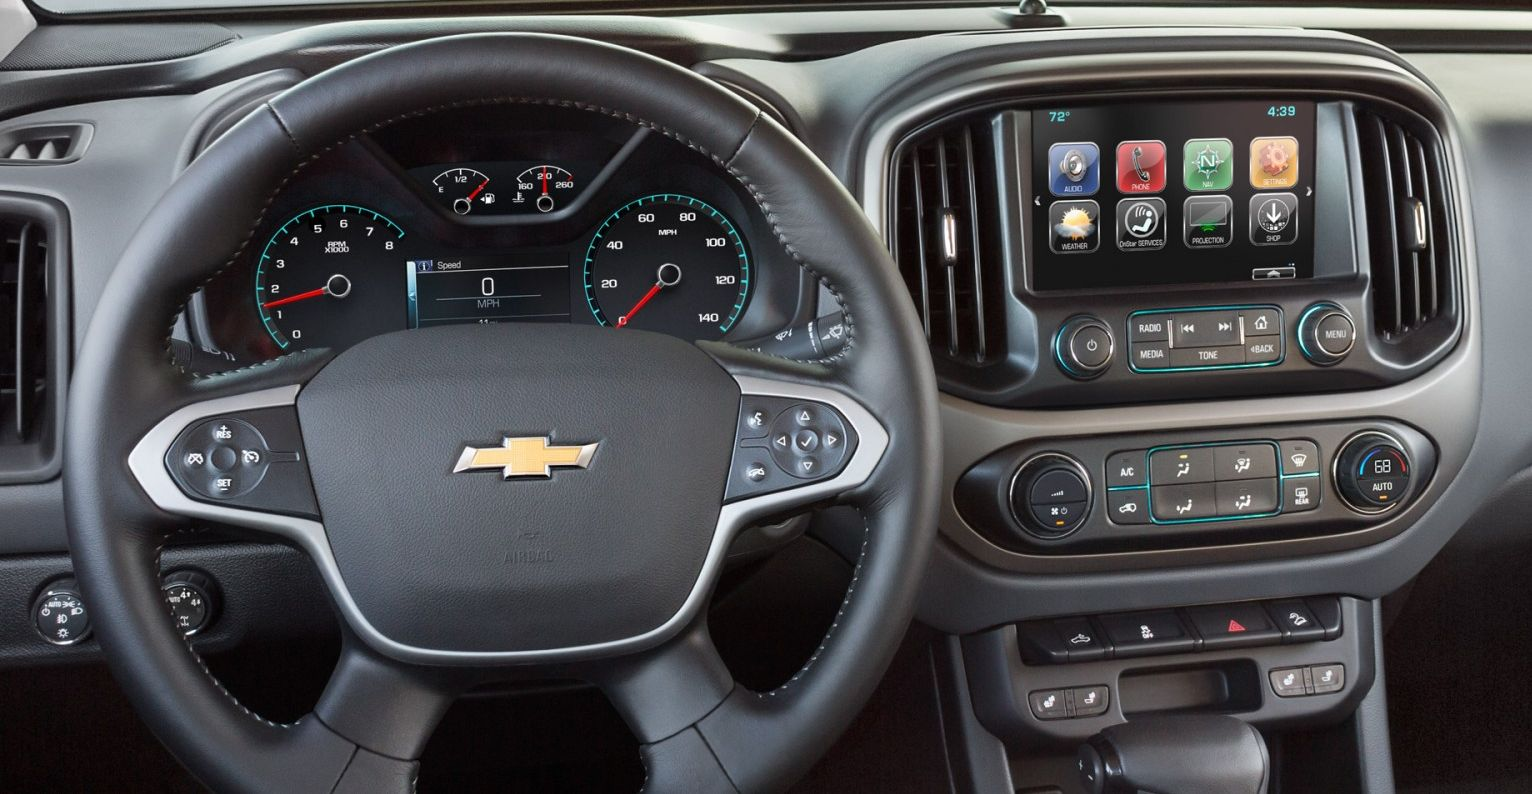 2017 Chevy Colorado Cabin Amenities